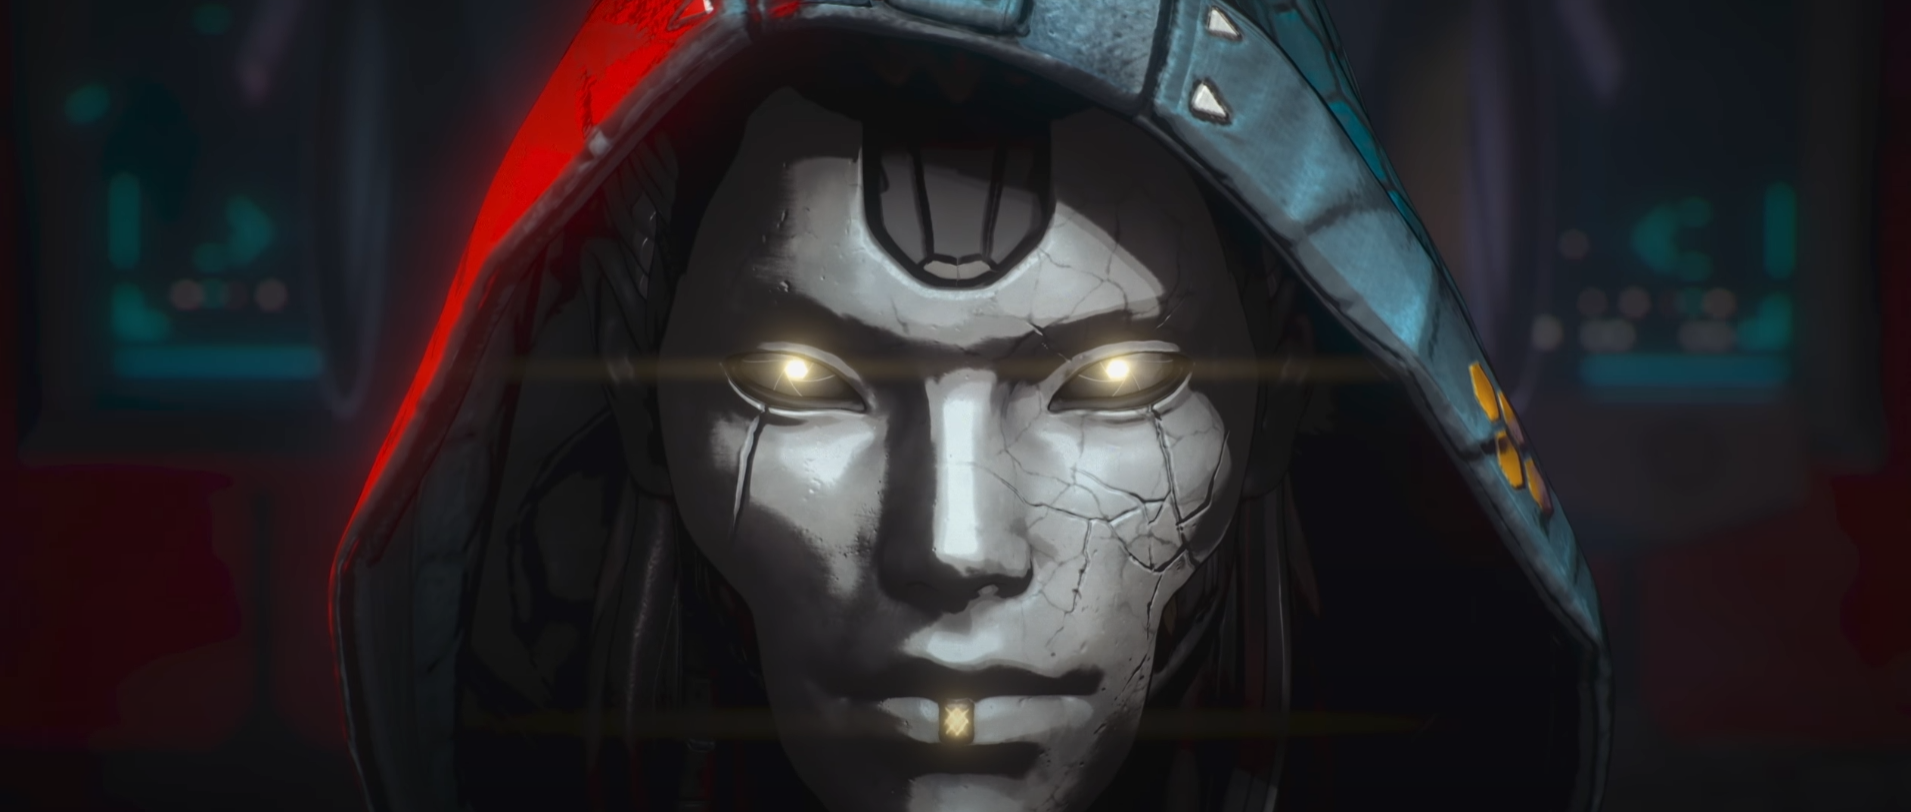 Ash from Titanfall in an Apex Legends teaser trailer